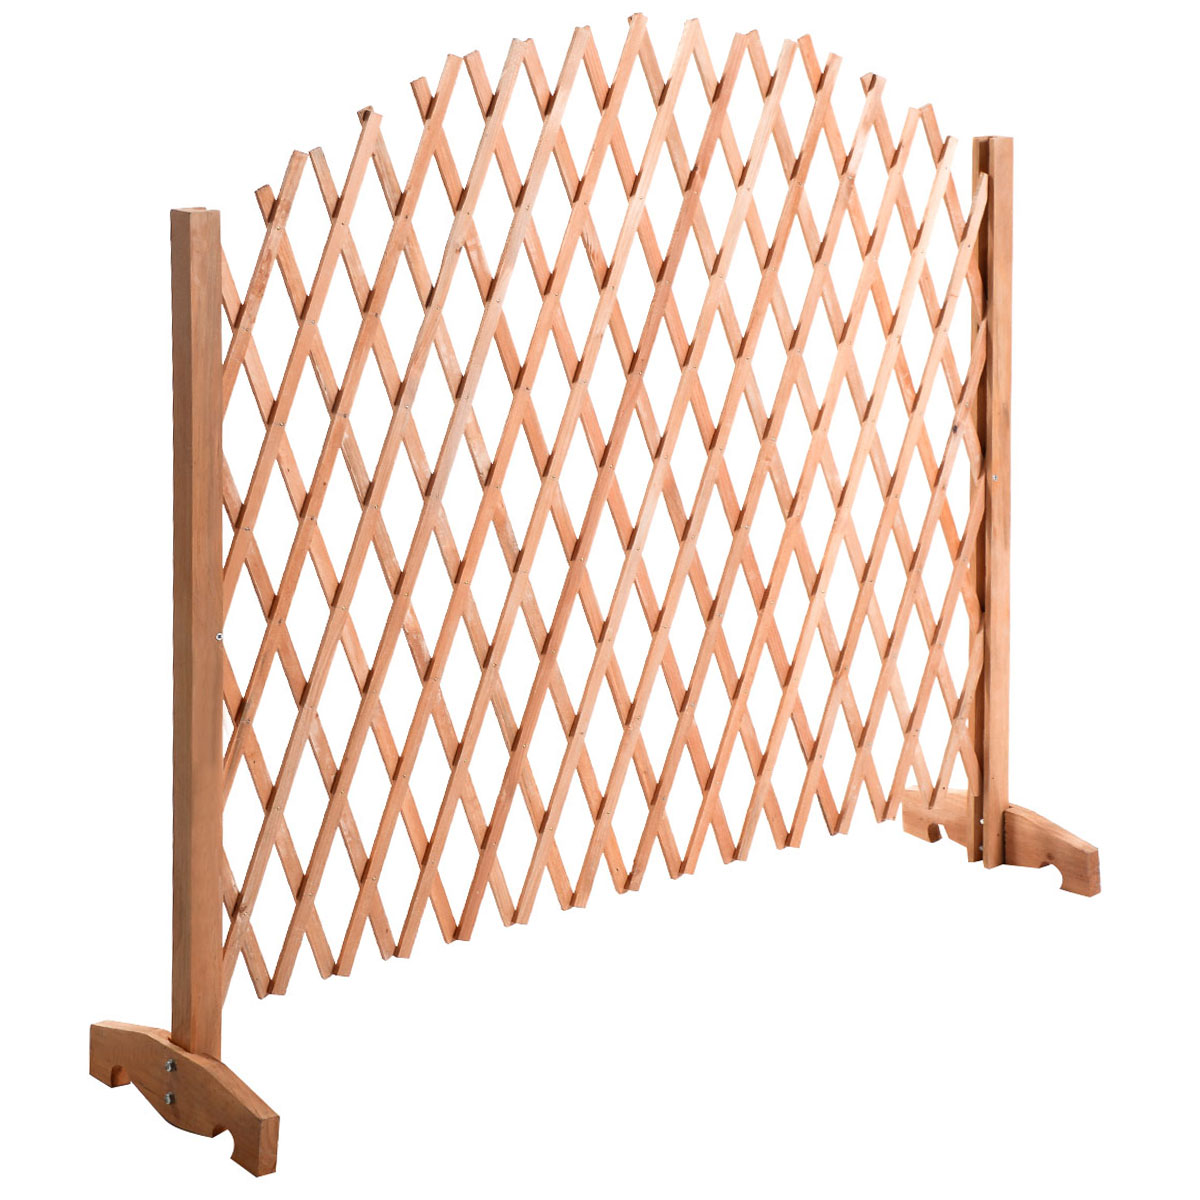 Costway Expanding Portable Fence Wooden Screen Dog Gate Pet Safety Kid Patio  Garden Lawn